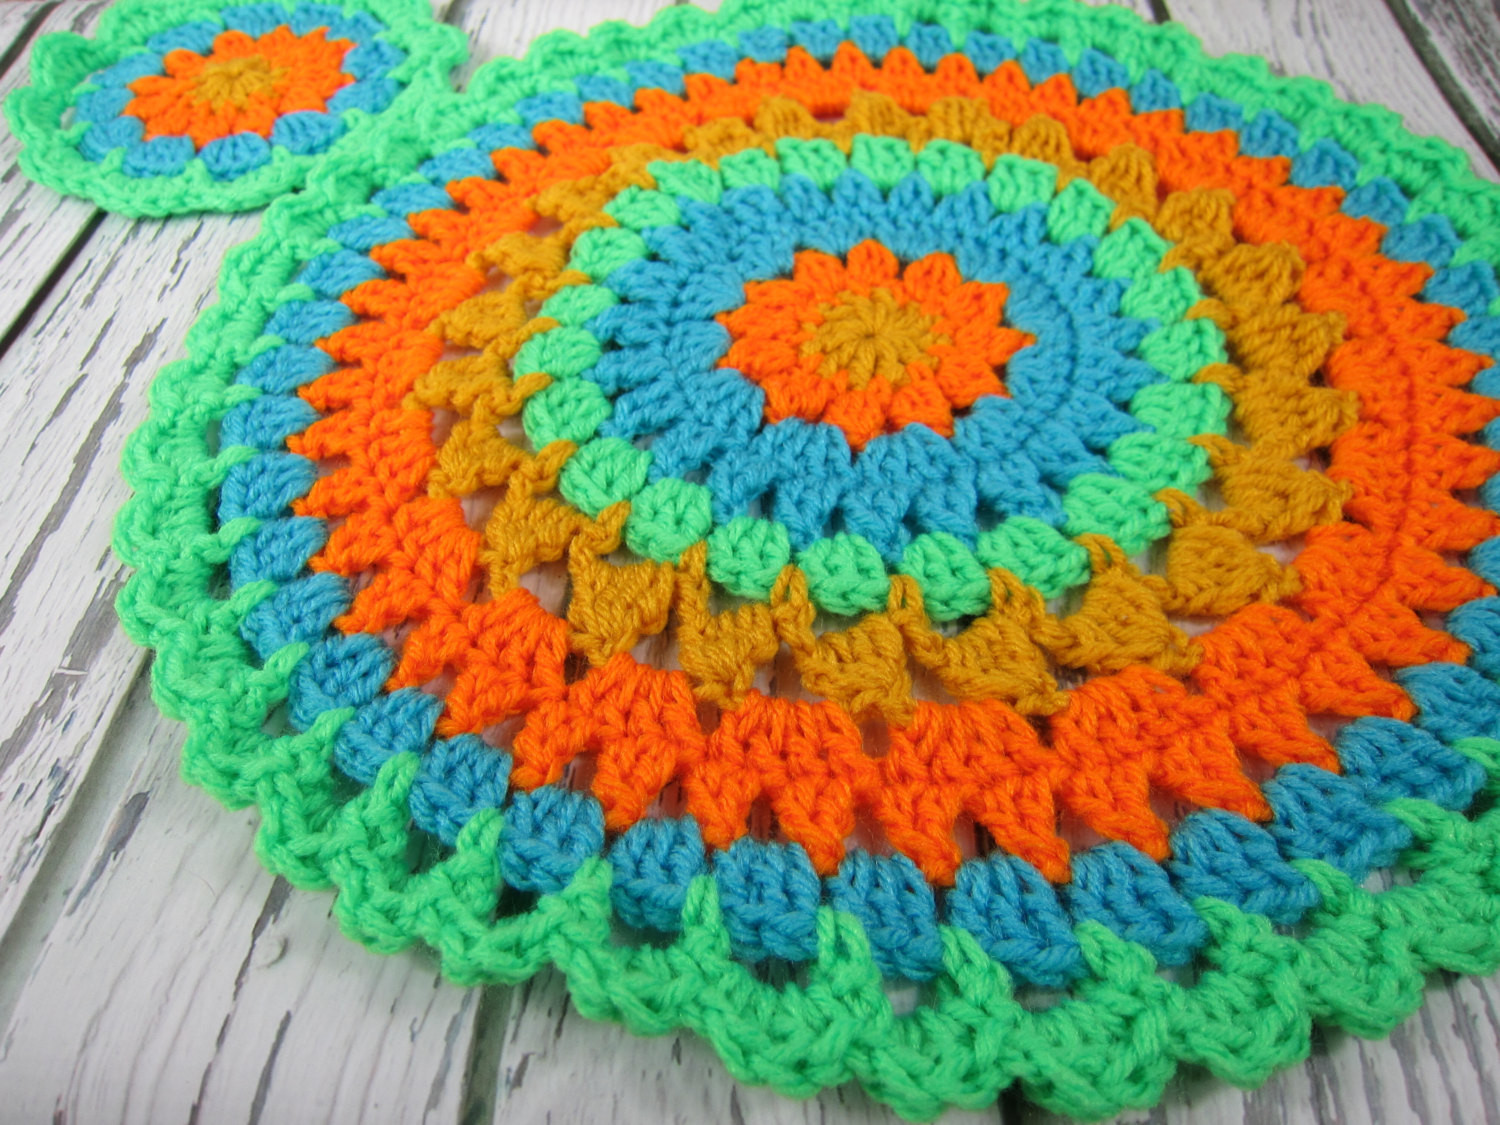 Crochet round placemats crochet round coasters table